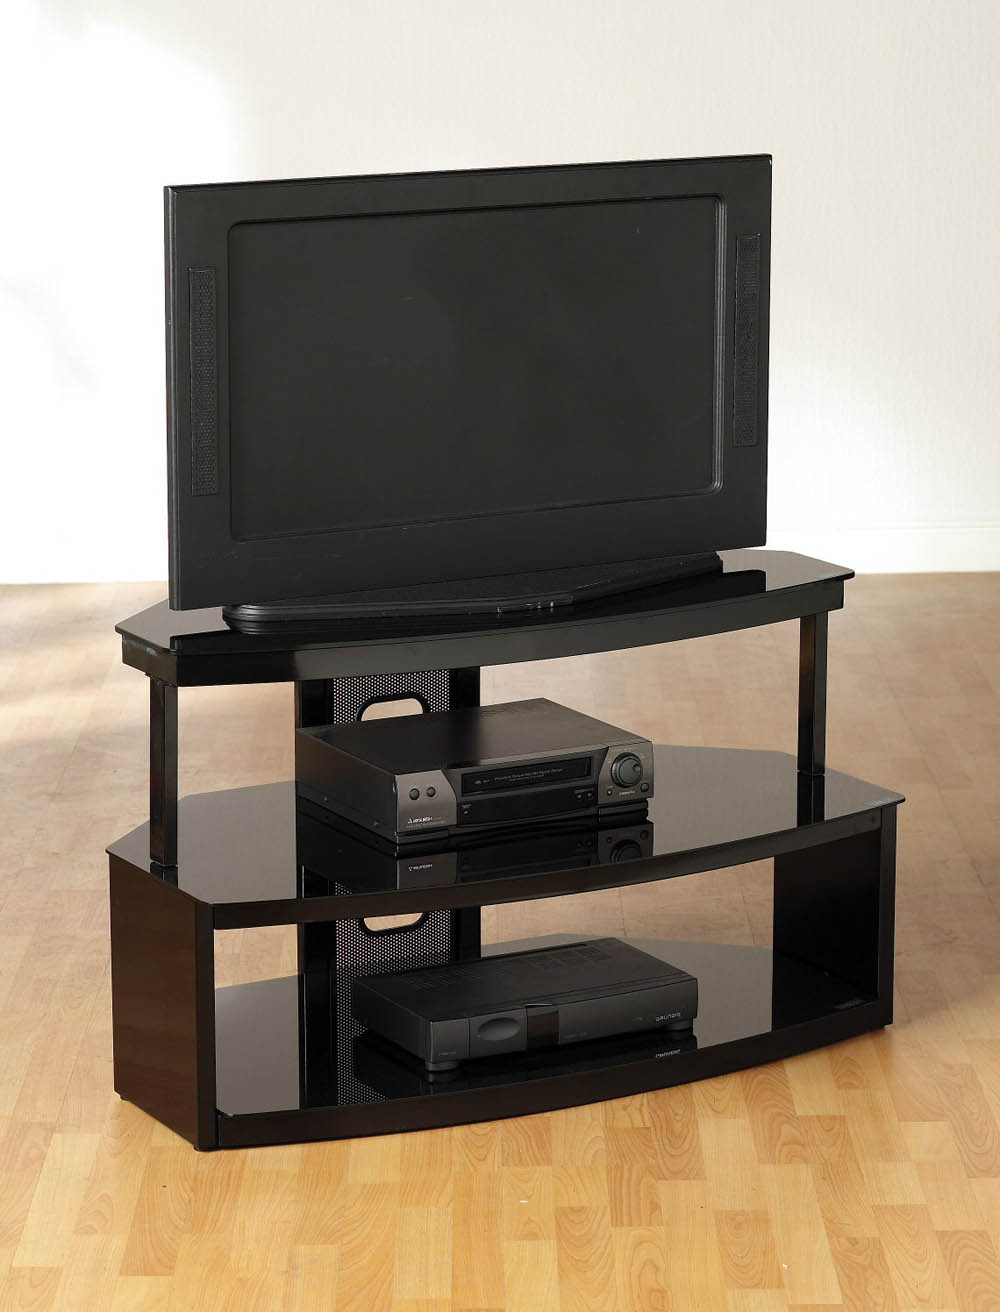 Furniture packages landlord packages landlord furniture for Furniture packages